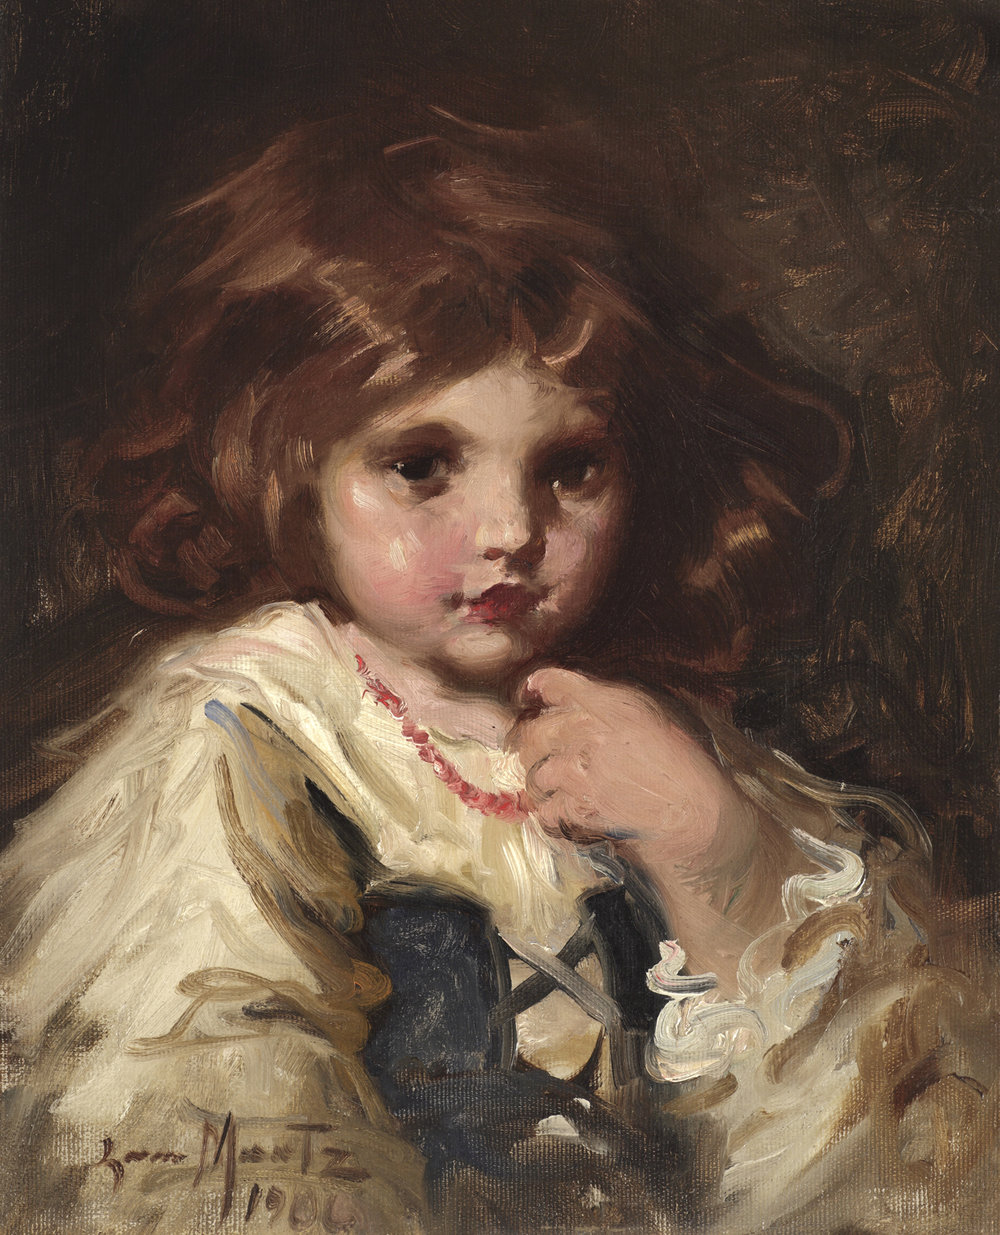 Laura Muntz Lyall (Canadian 1860-1930) 'Portrait of a Little Girl, 1906'